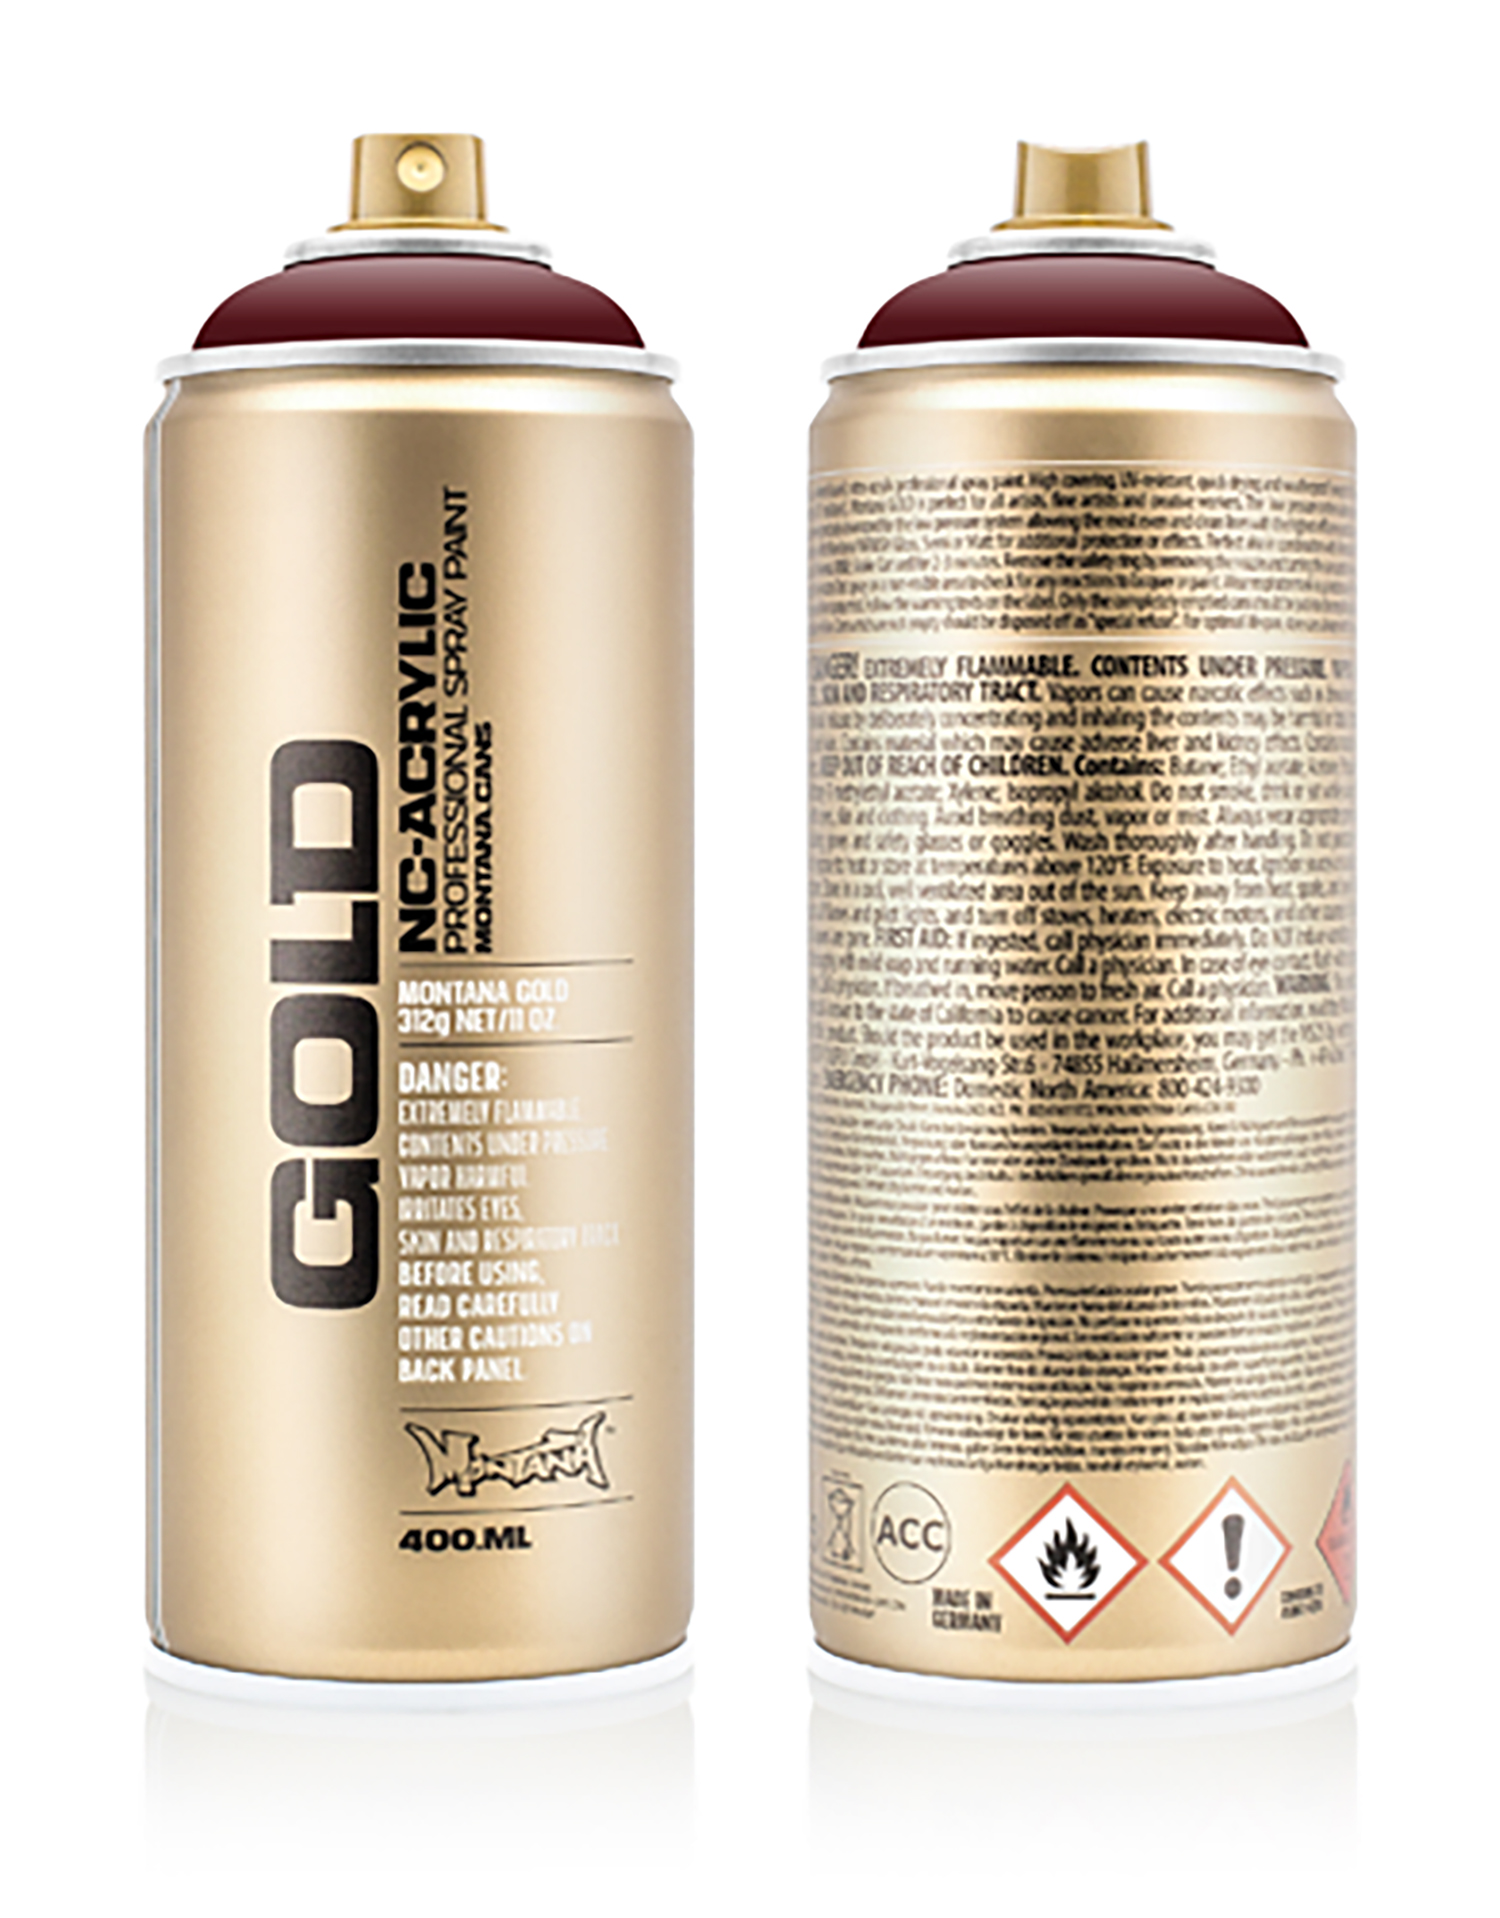 MONTANA-GOLD-SPRAY-400ML-G-3070